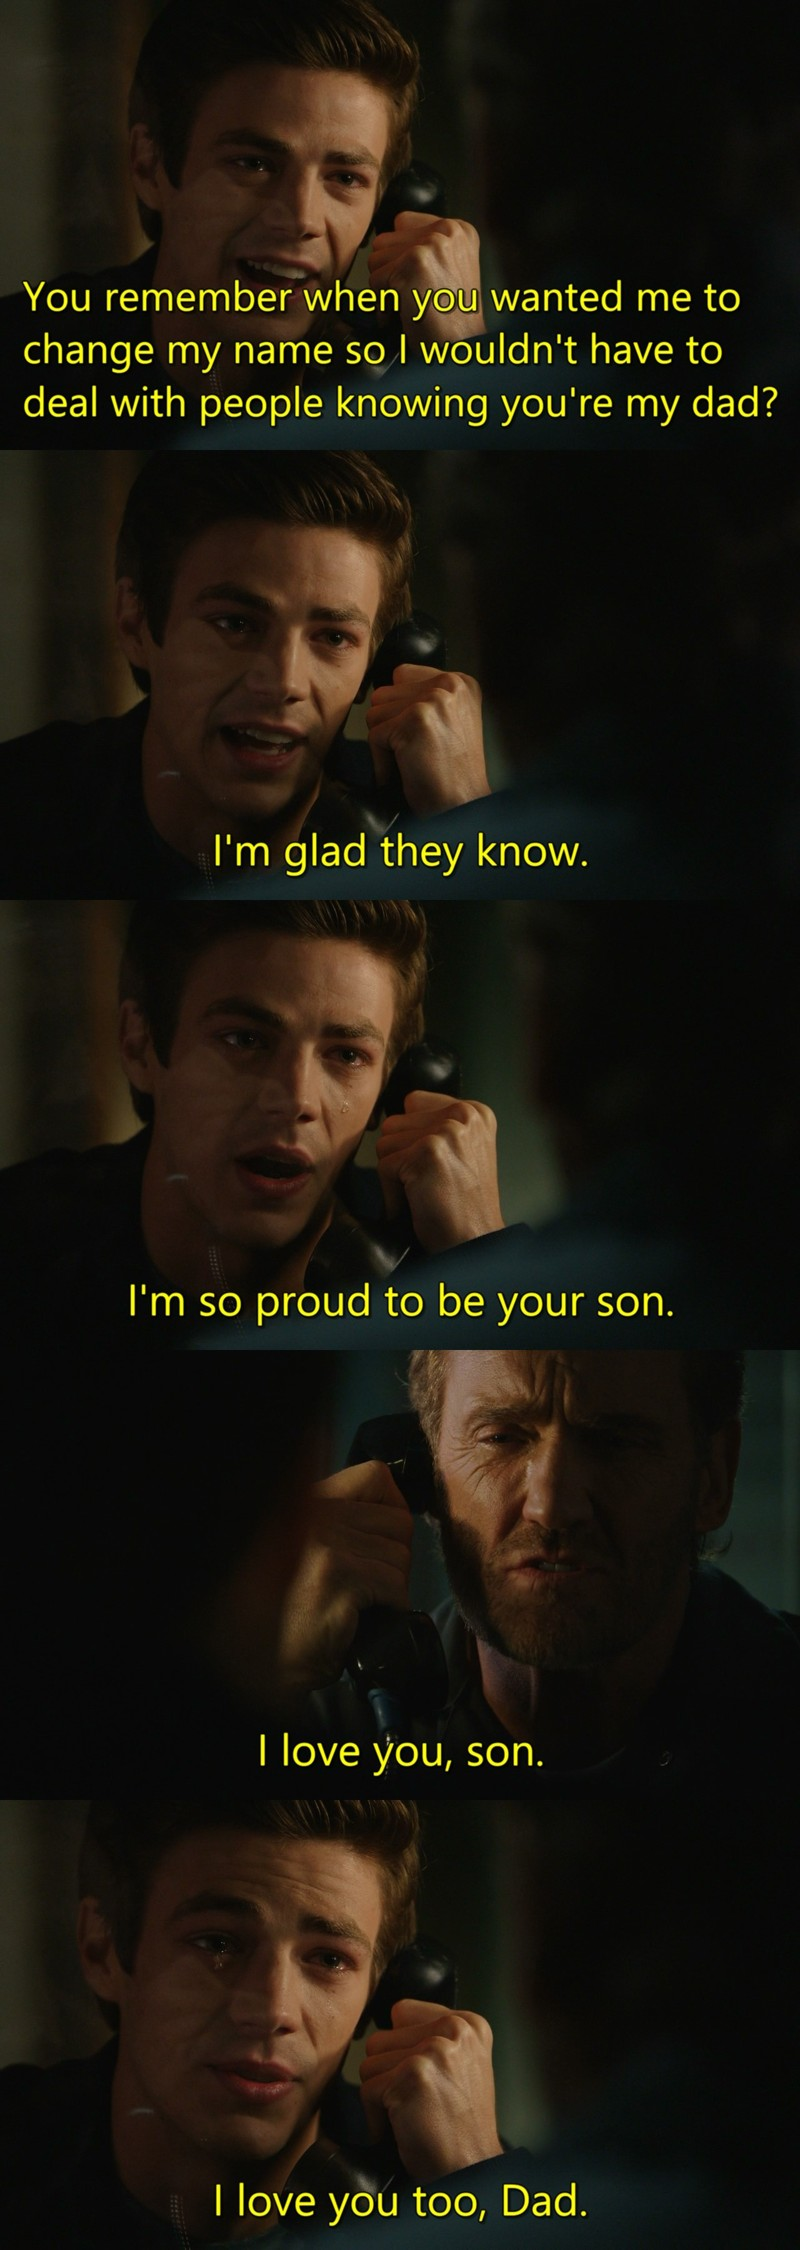 I teared up at this moment, I hope Barry soon find his mother killer.